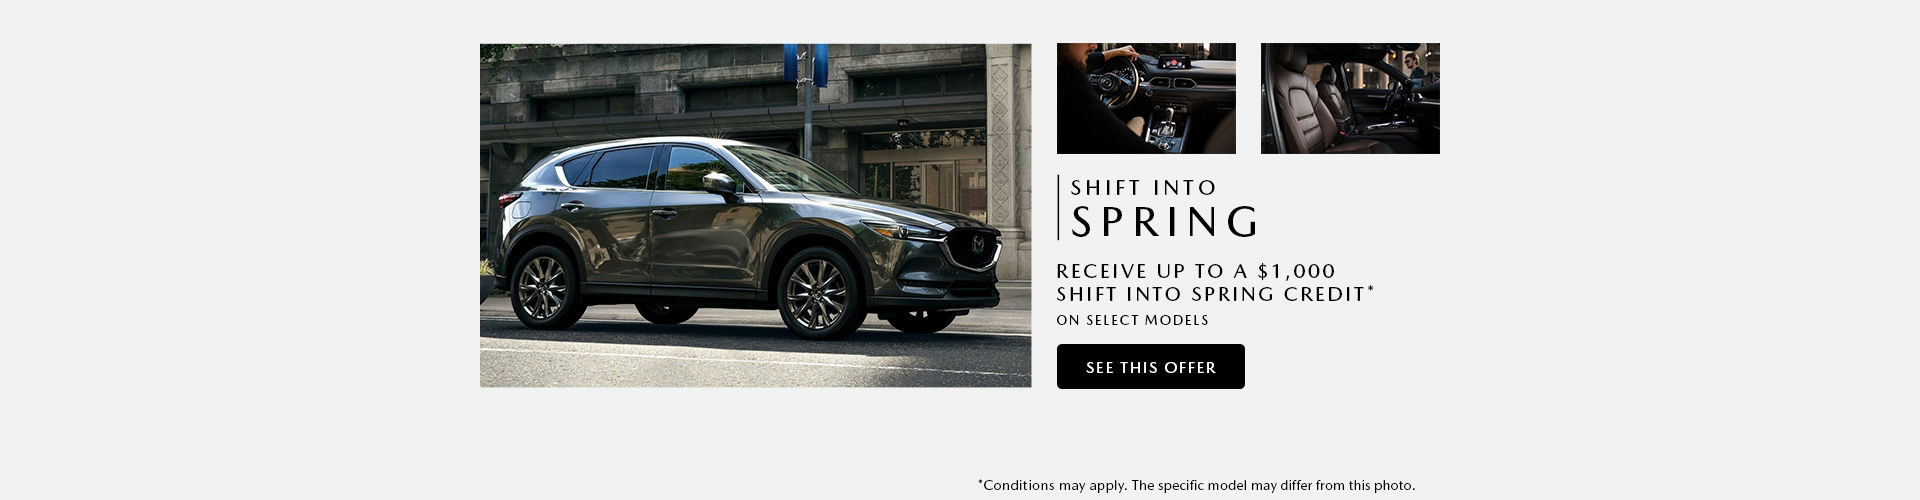 Shift into Spring - Headers event